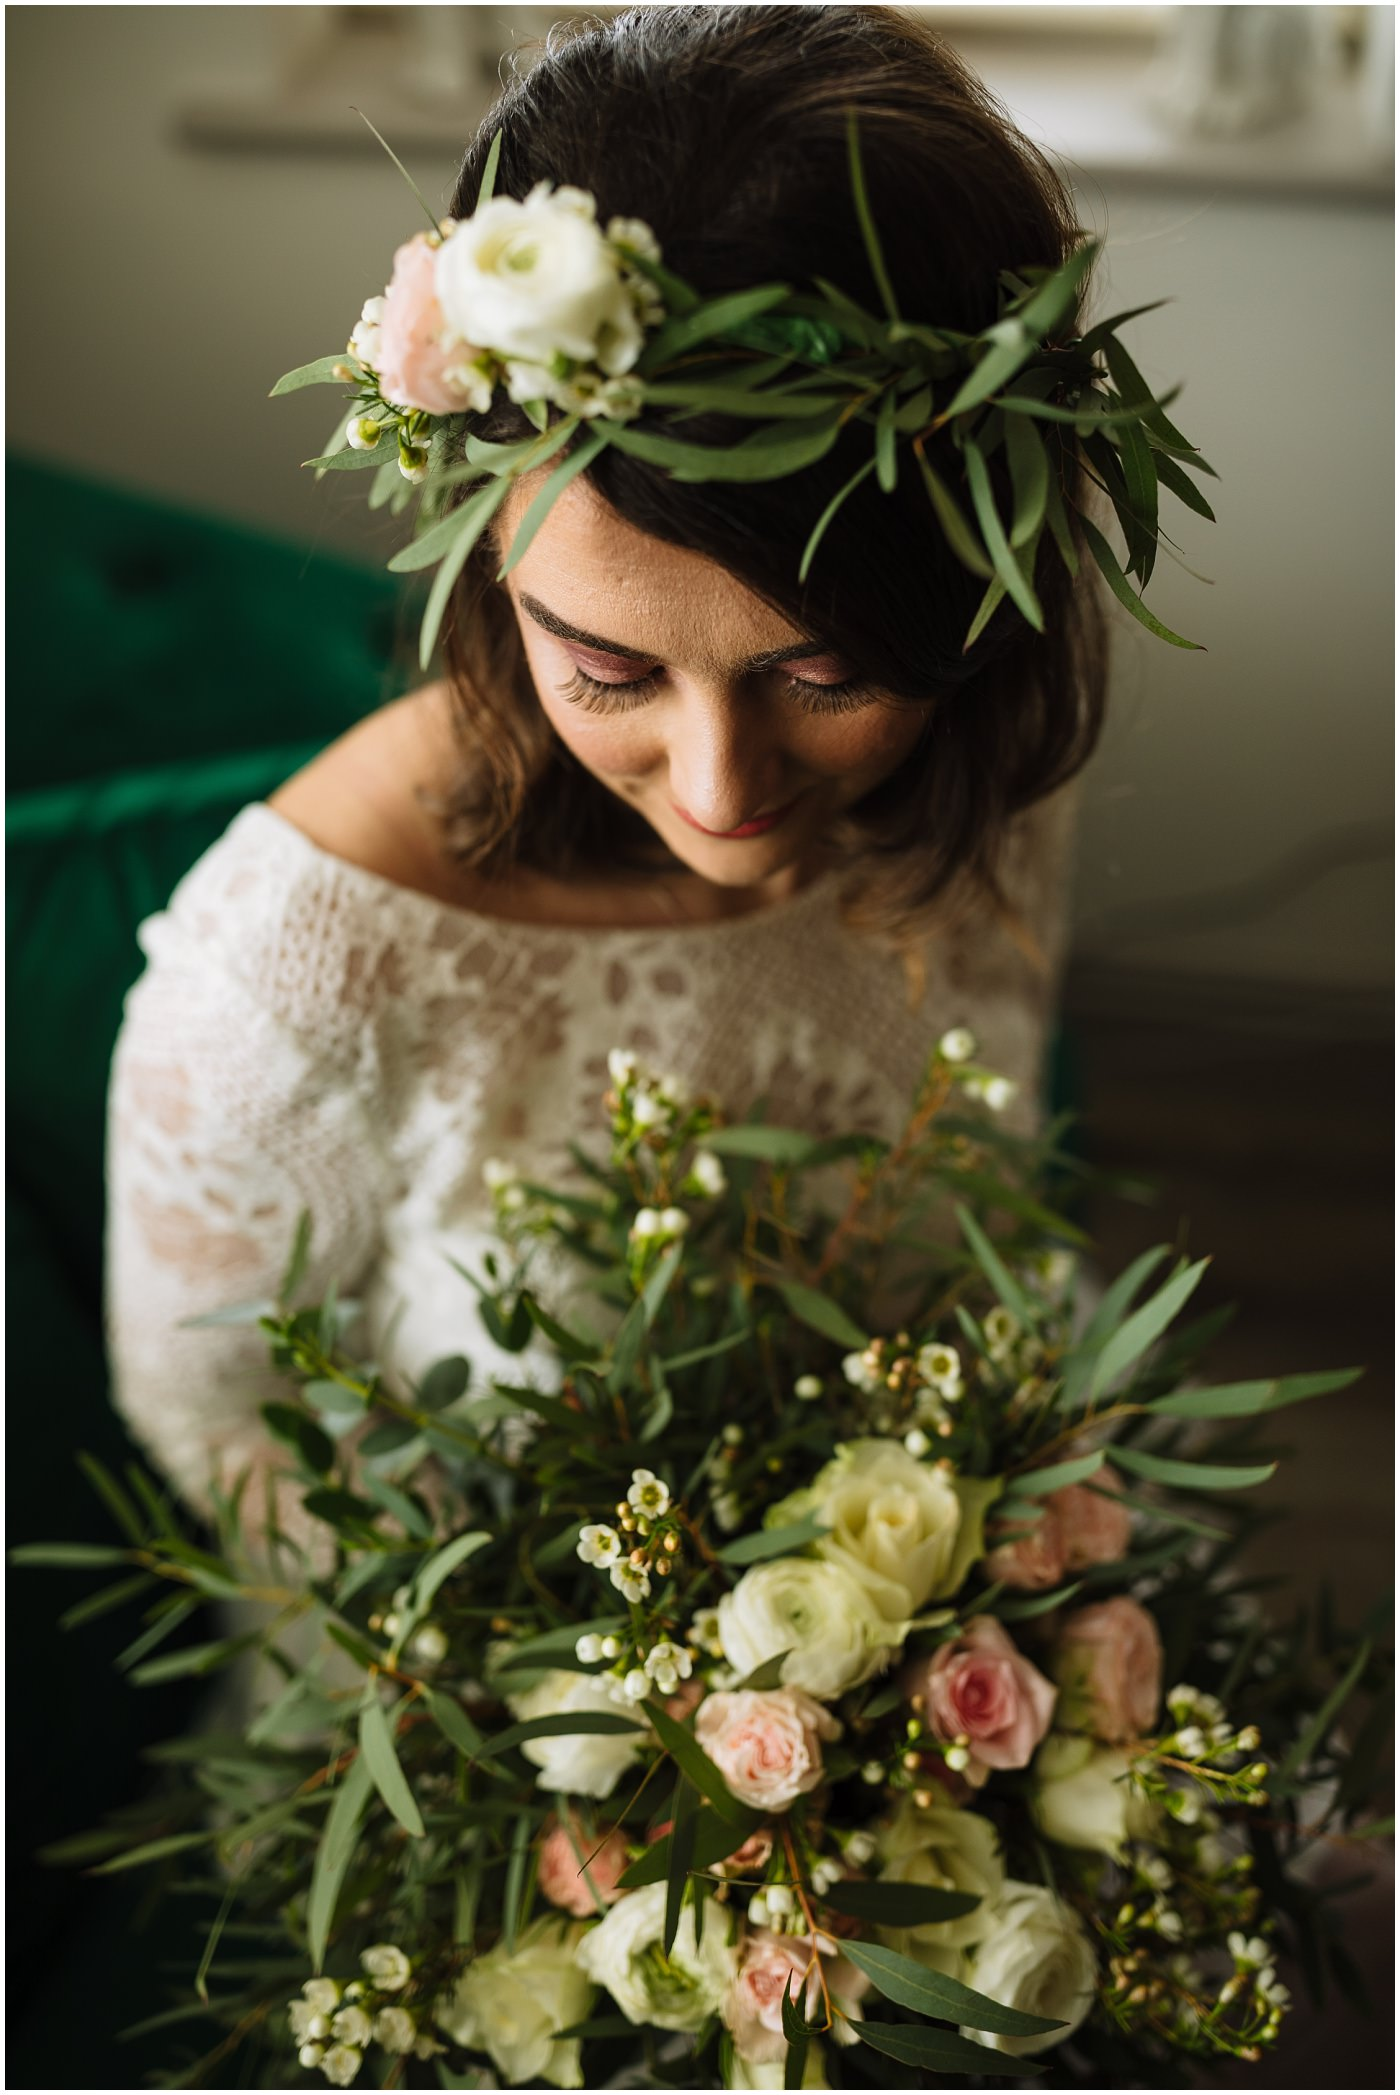 Beautiful bridal portrait at The Wellbeing Farm